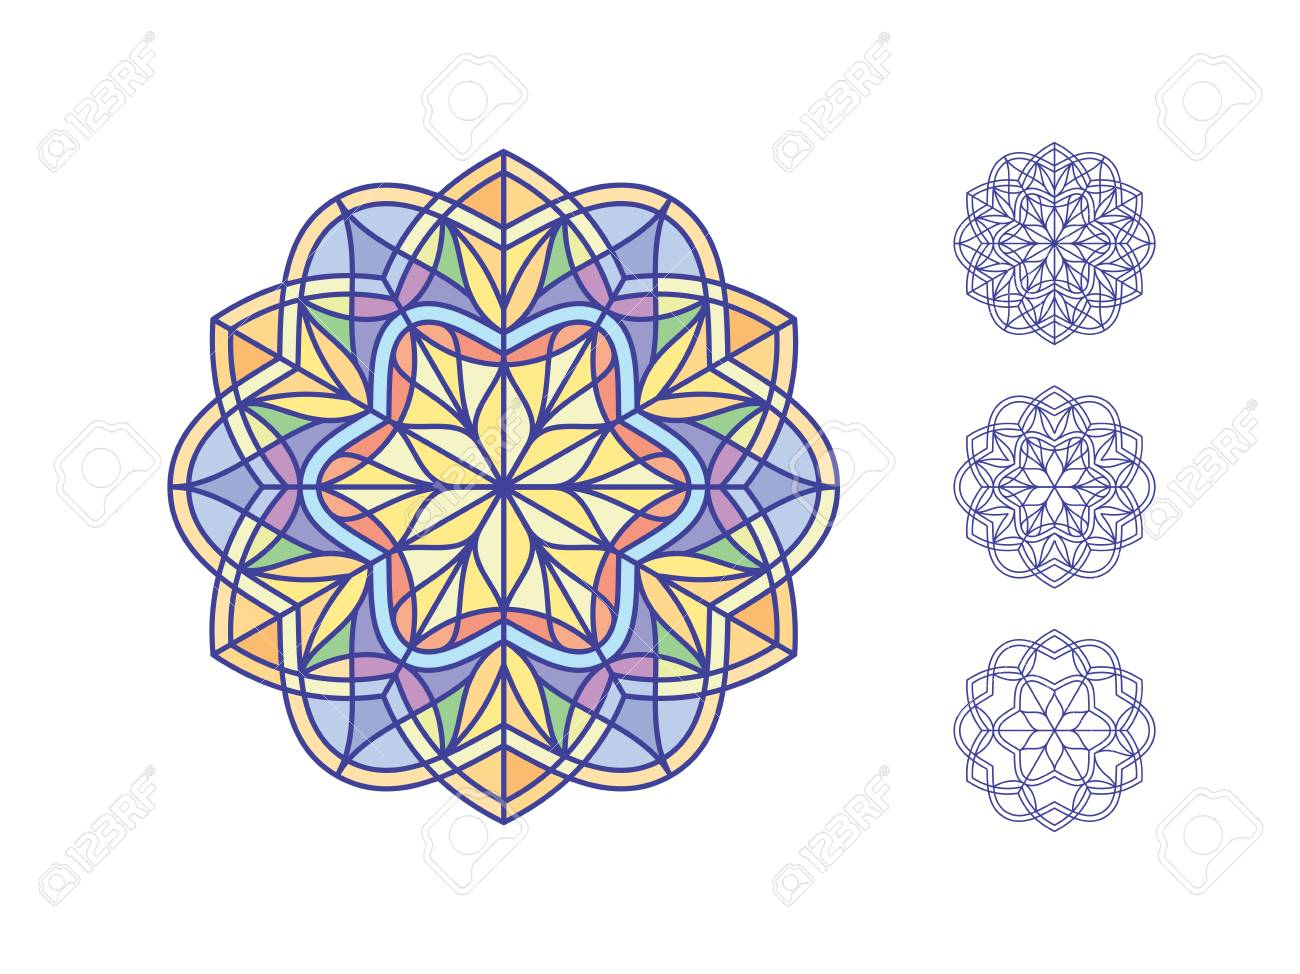 Stained glass templates round elements for stained glass windows stained glass templates round elements for stained glass windows simple mandala flowers in maxwellsz